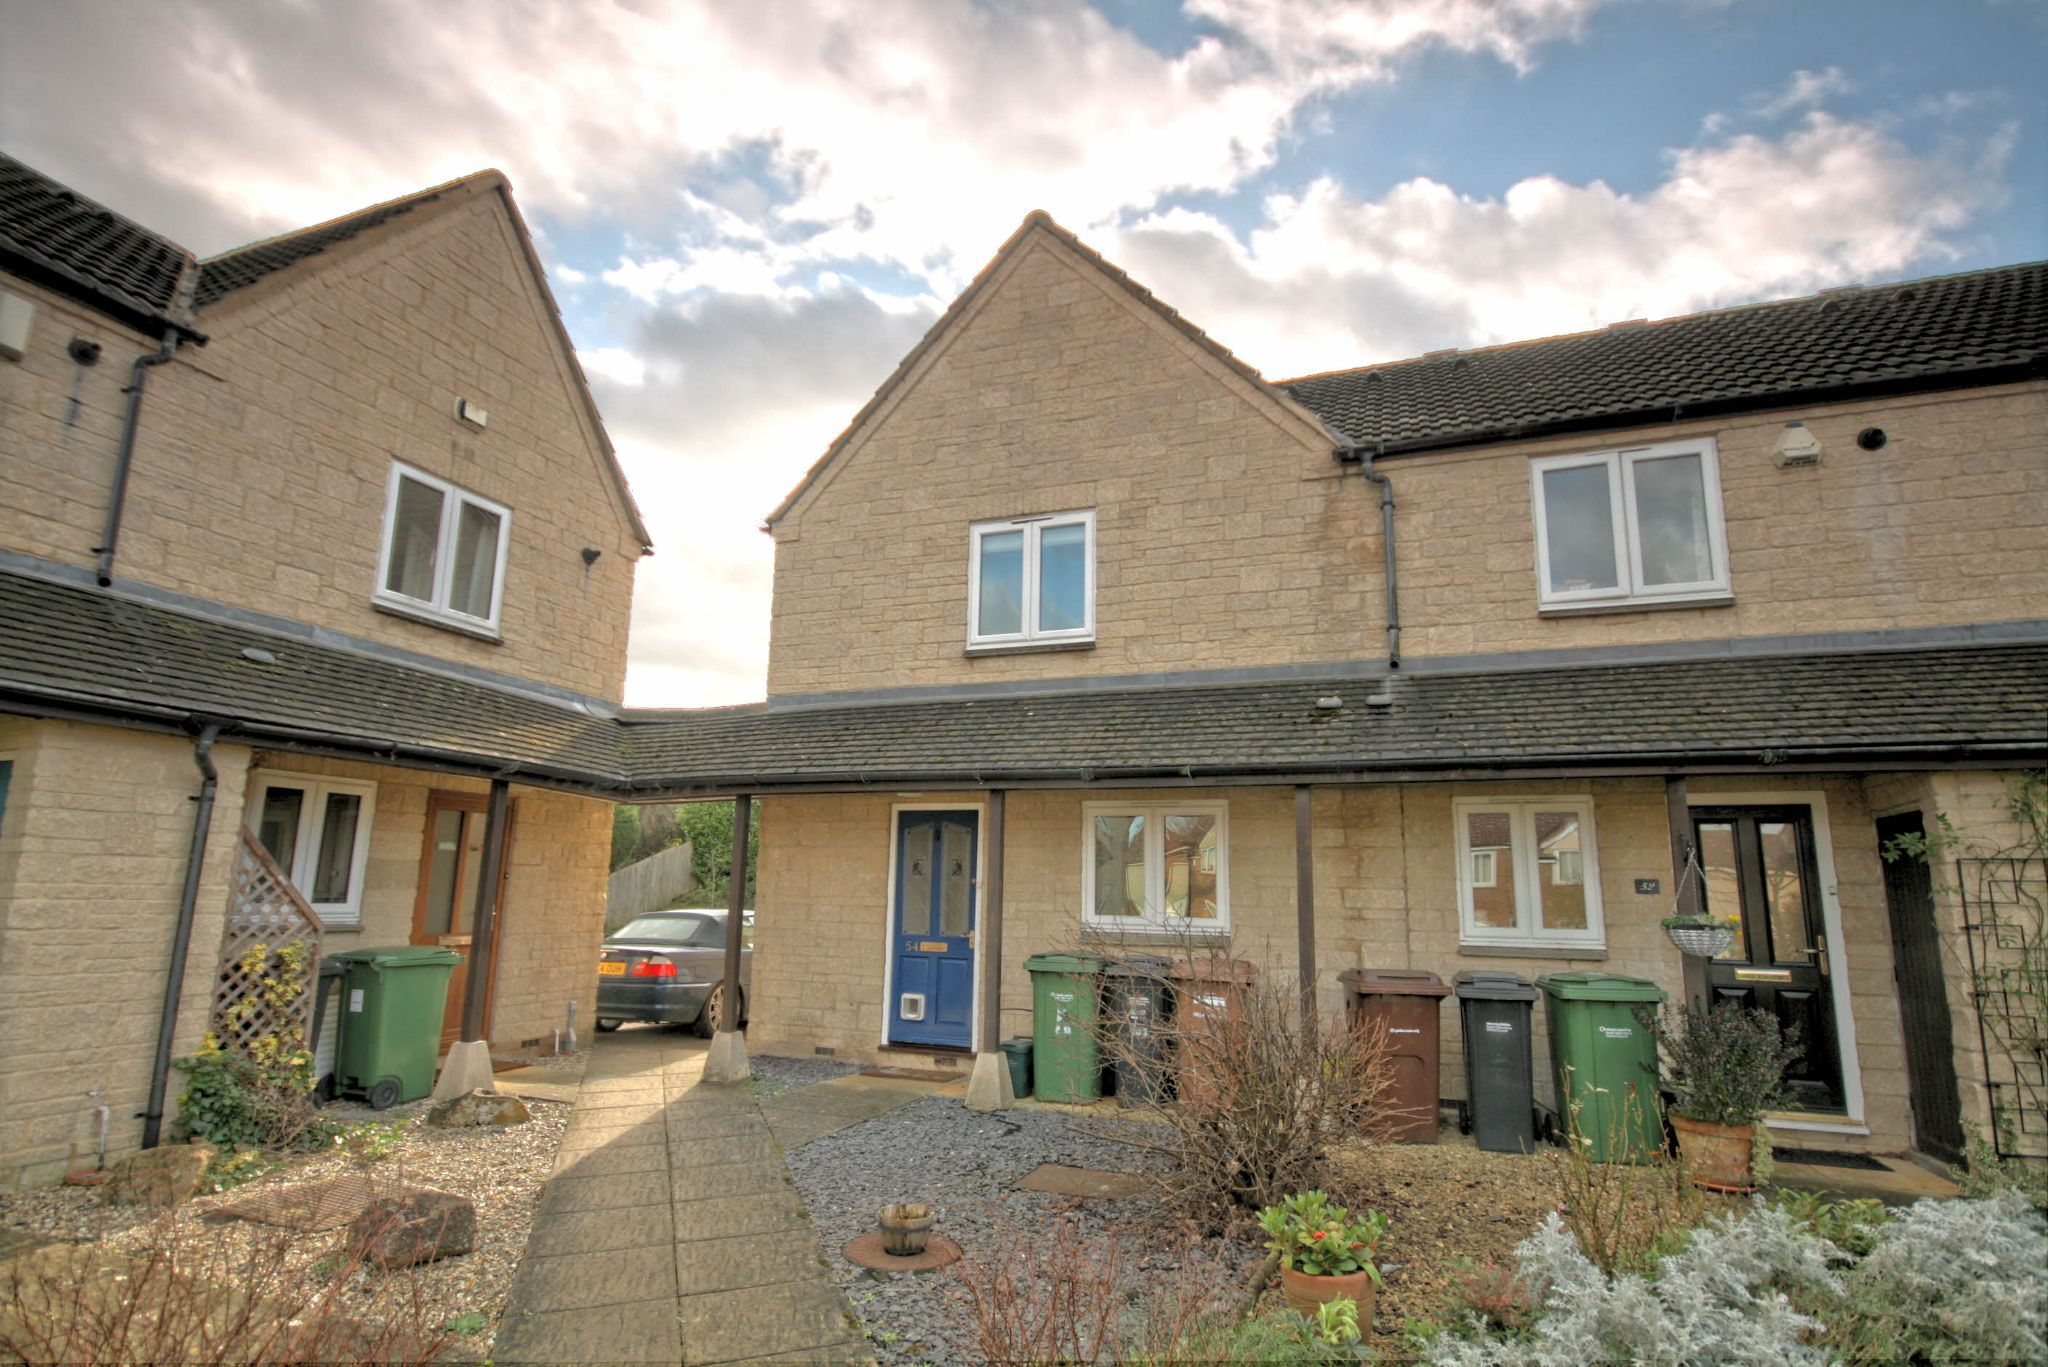 3 Bedroom End Terraced House For Sale - Front view